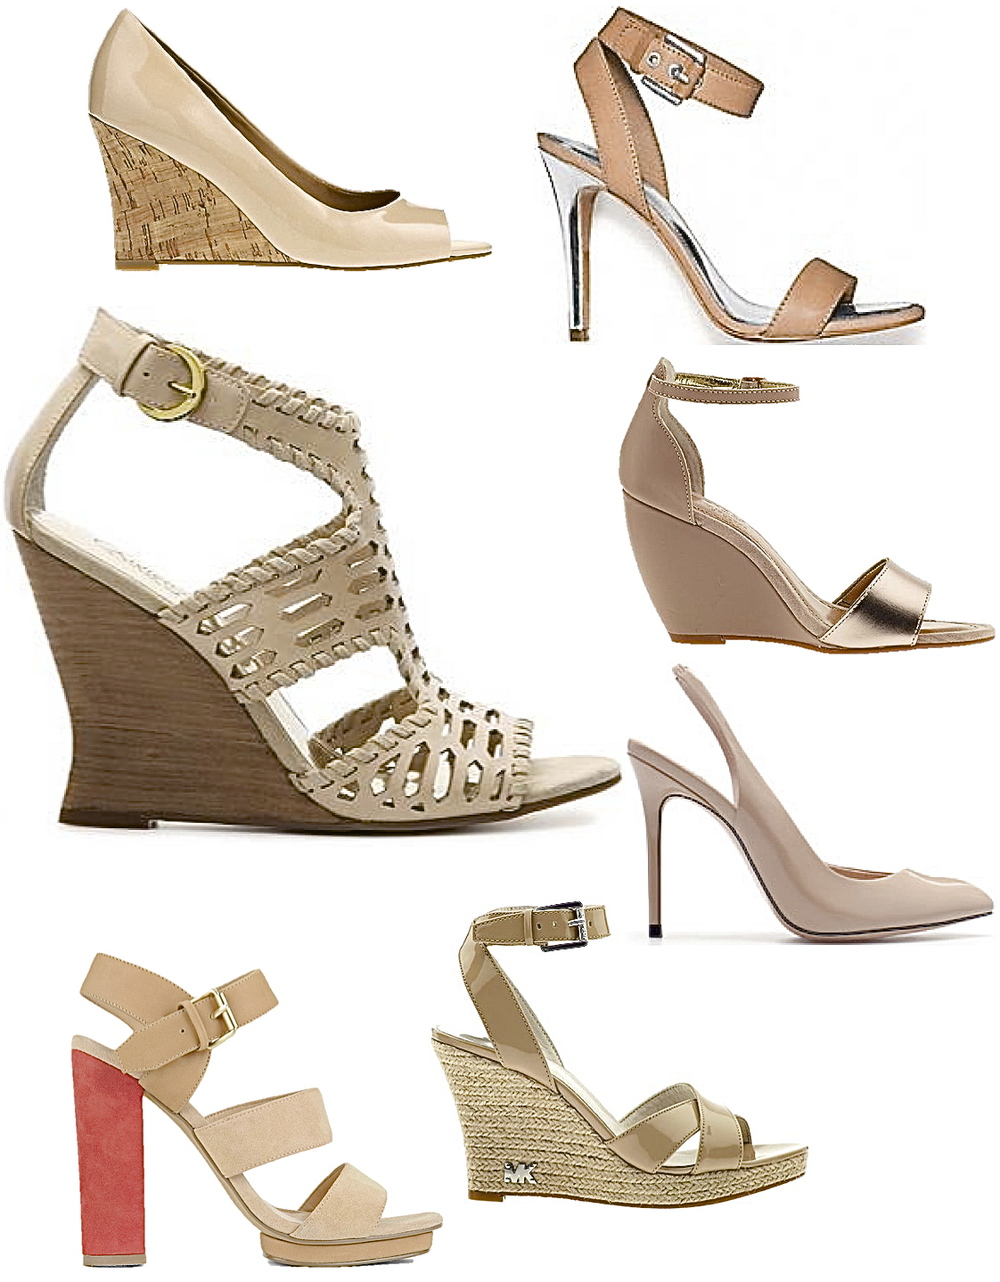 nude heels and wedges.jpg